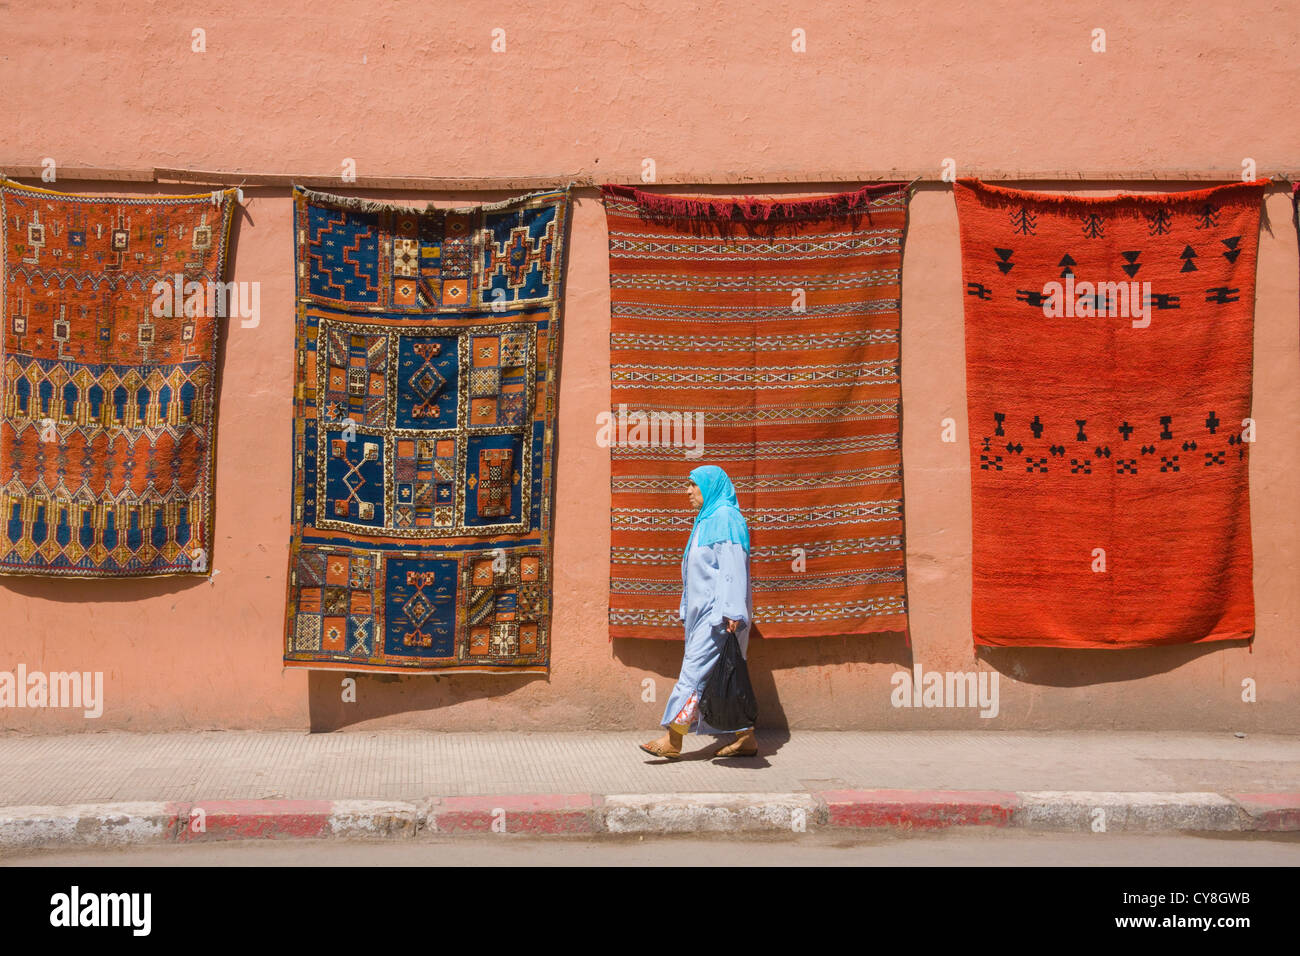 Woman walking by tapestry on the street, Marrakech, Morocco - Stock Image